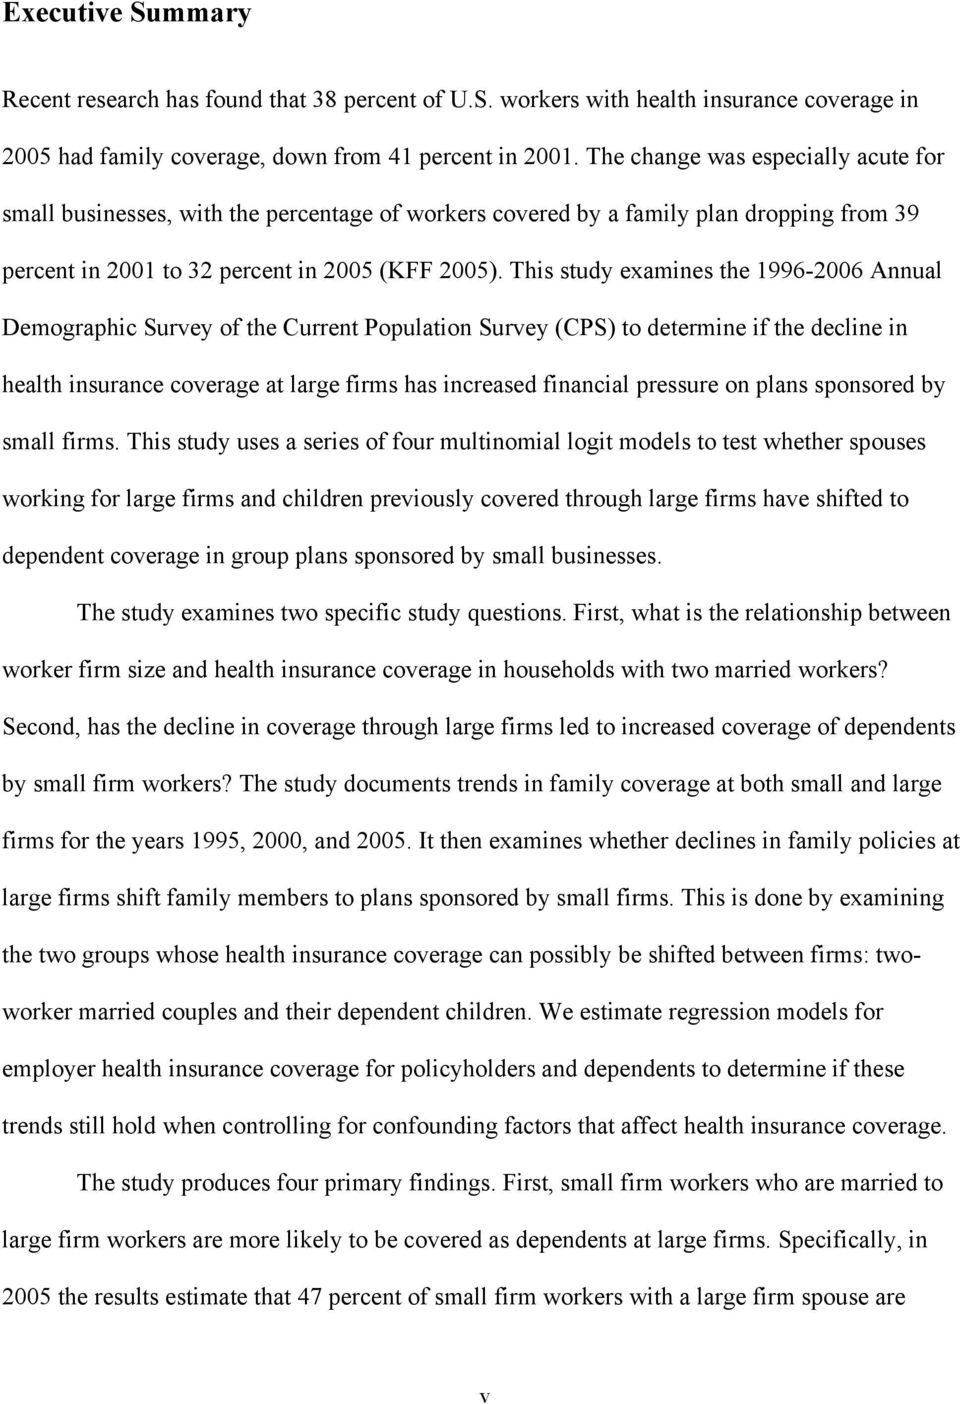 This study examines the 1996-2006 Annual Demographic Survey of the Current Population Survey (CPS) to determine if the decline in health insurance coverage at large firms has increased financial